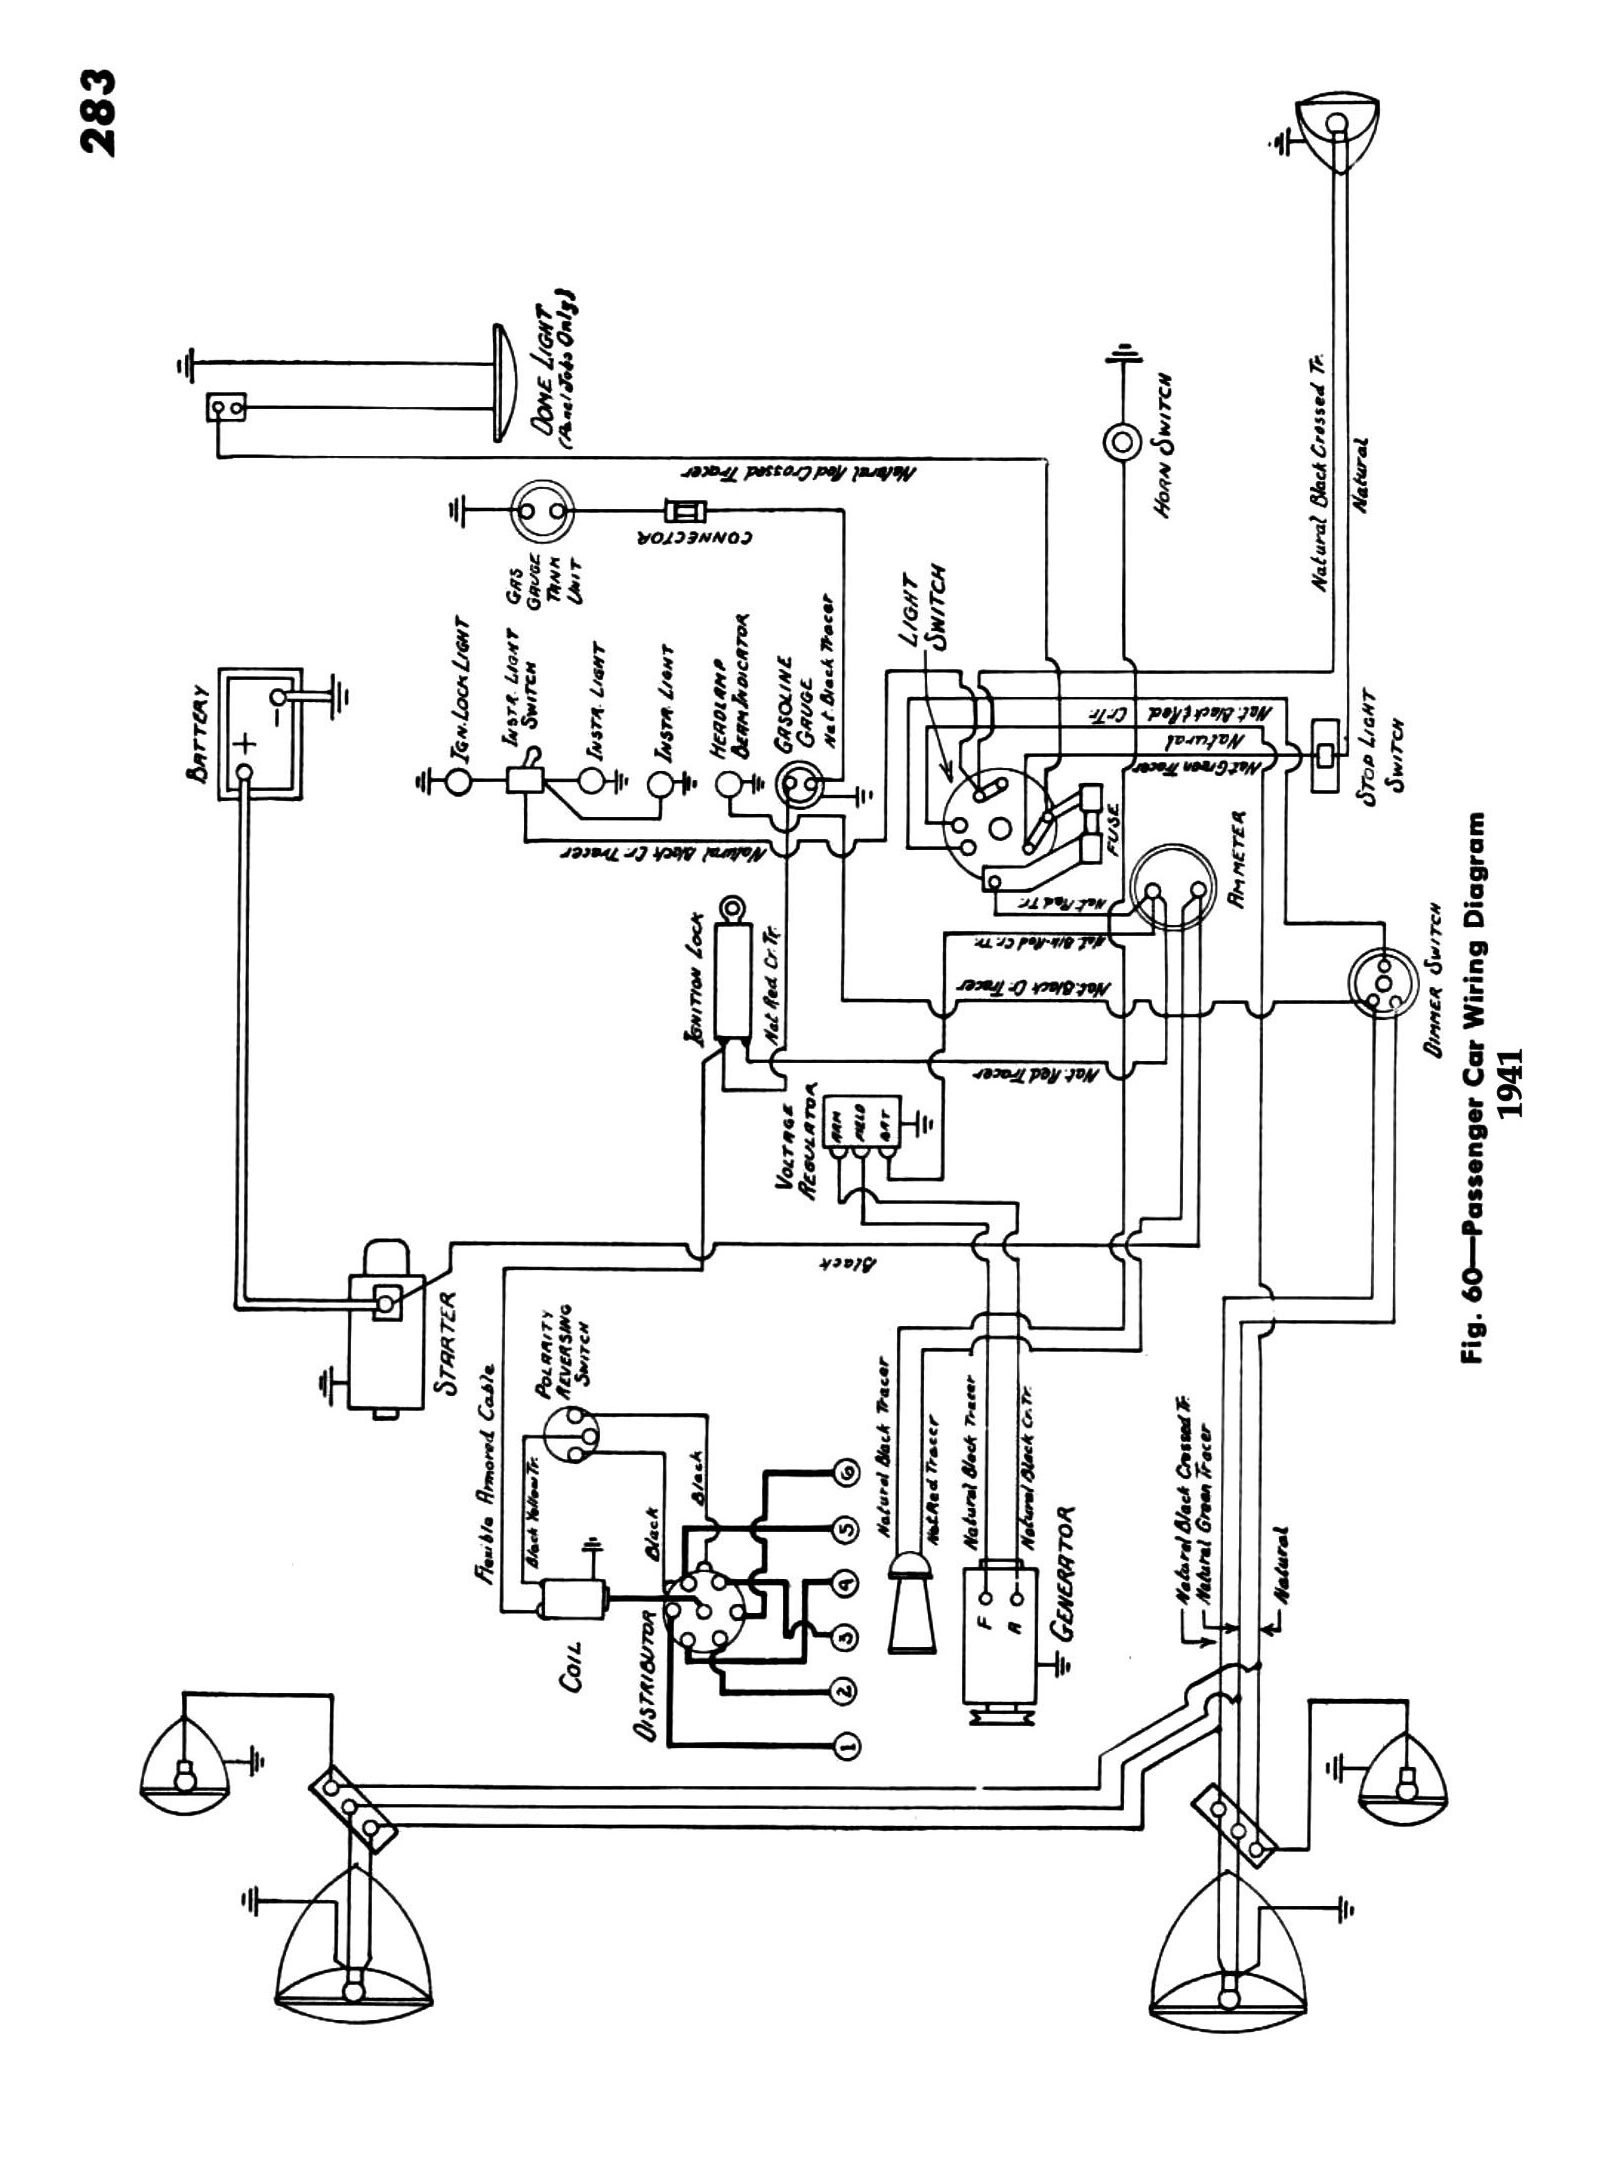 Coleman Generator Wiring Diagram Diagrams Wiring Diagram